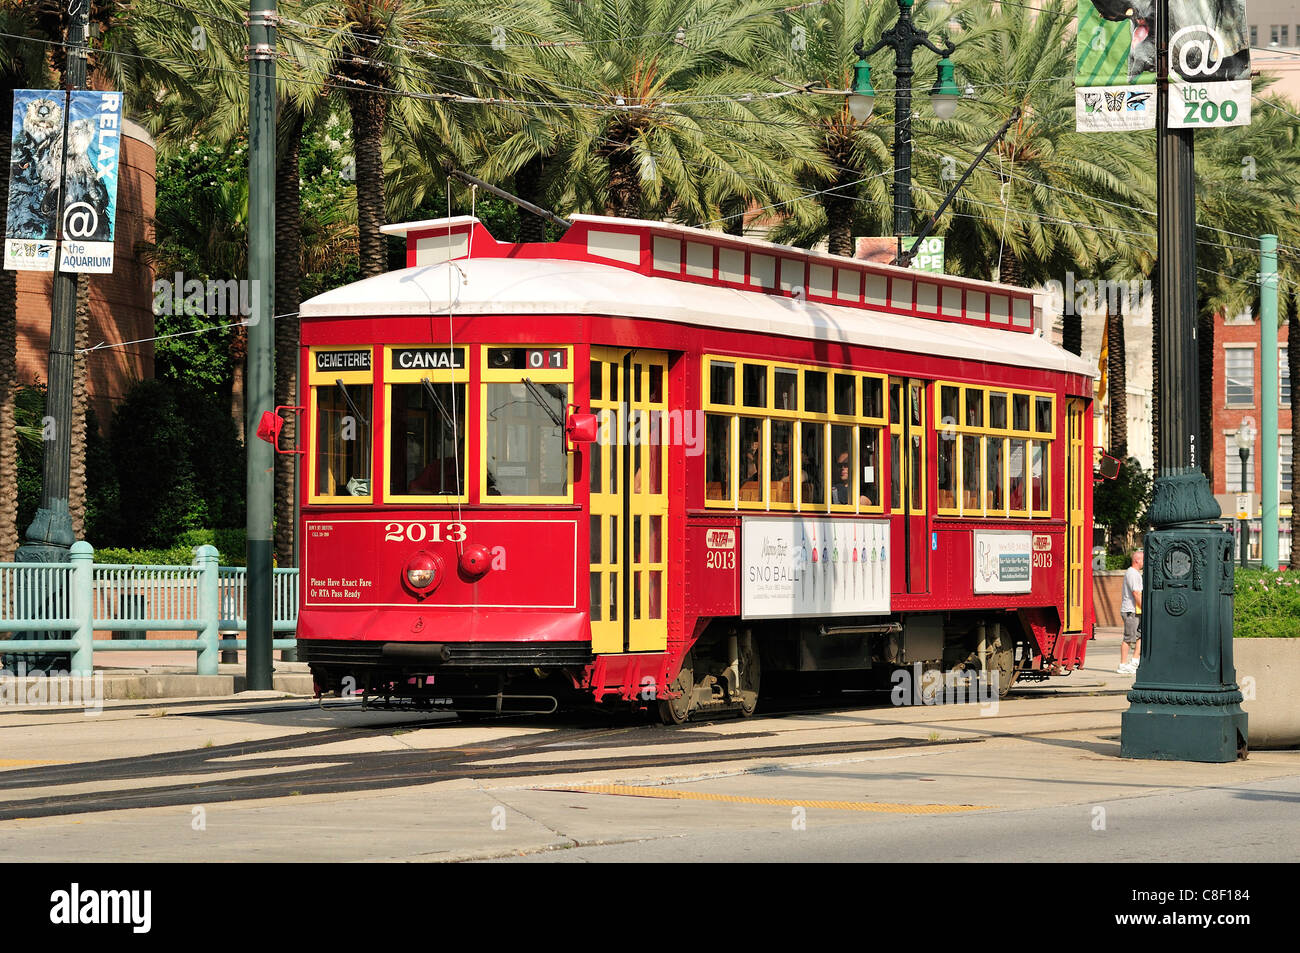 New Orleans Street Cars: Red Streetcar, Canal Street, New Orleans, Louisiana, USA